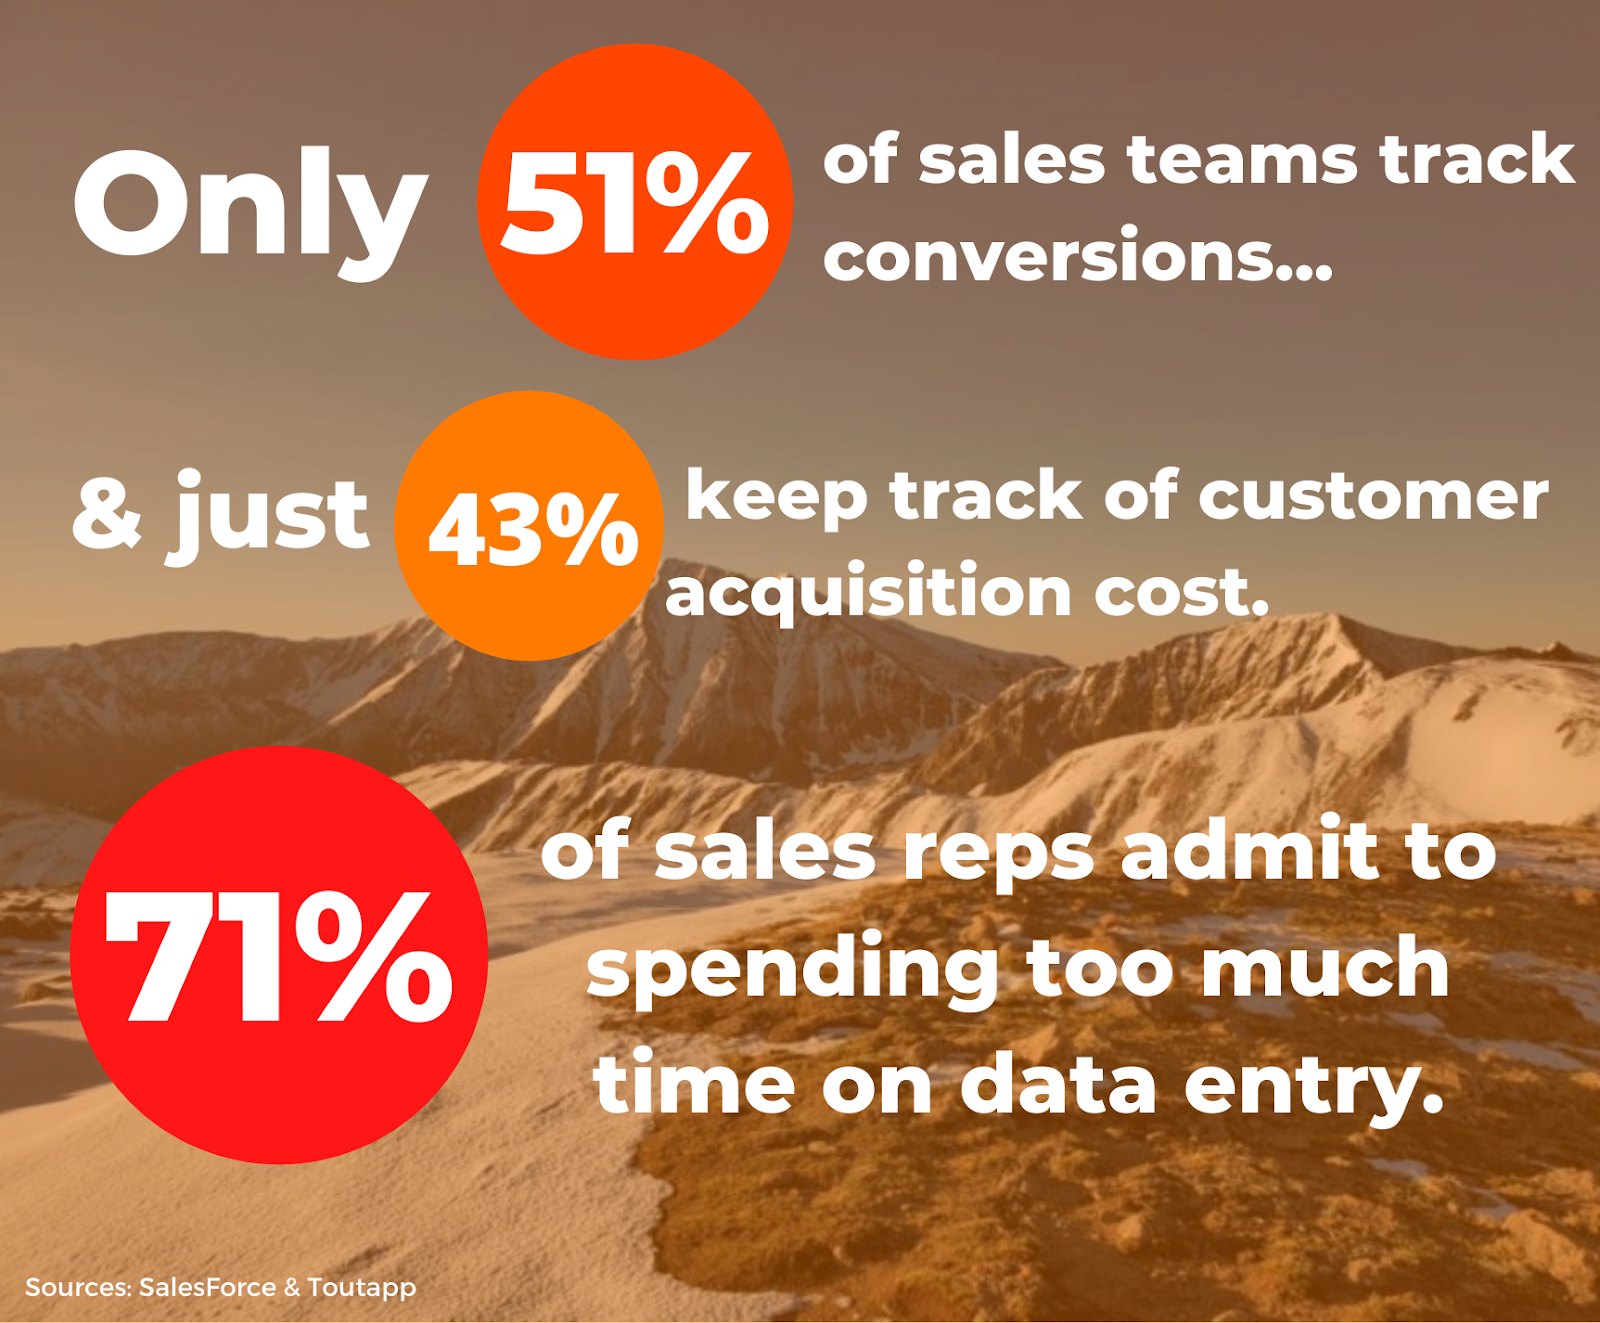 Infographic showing data on businesses that track sales